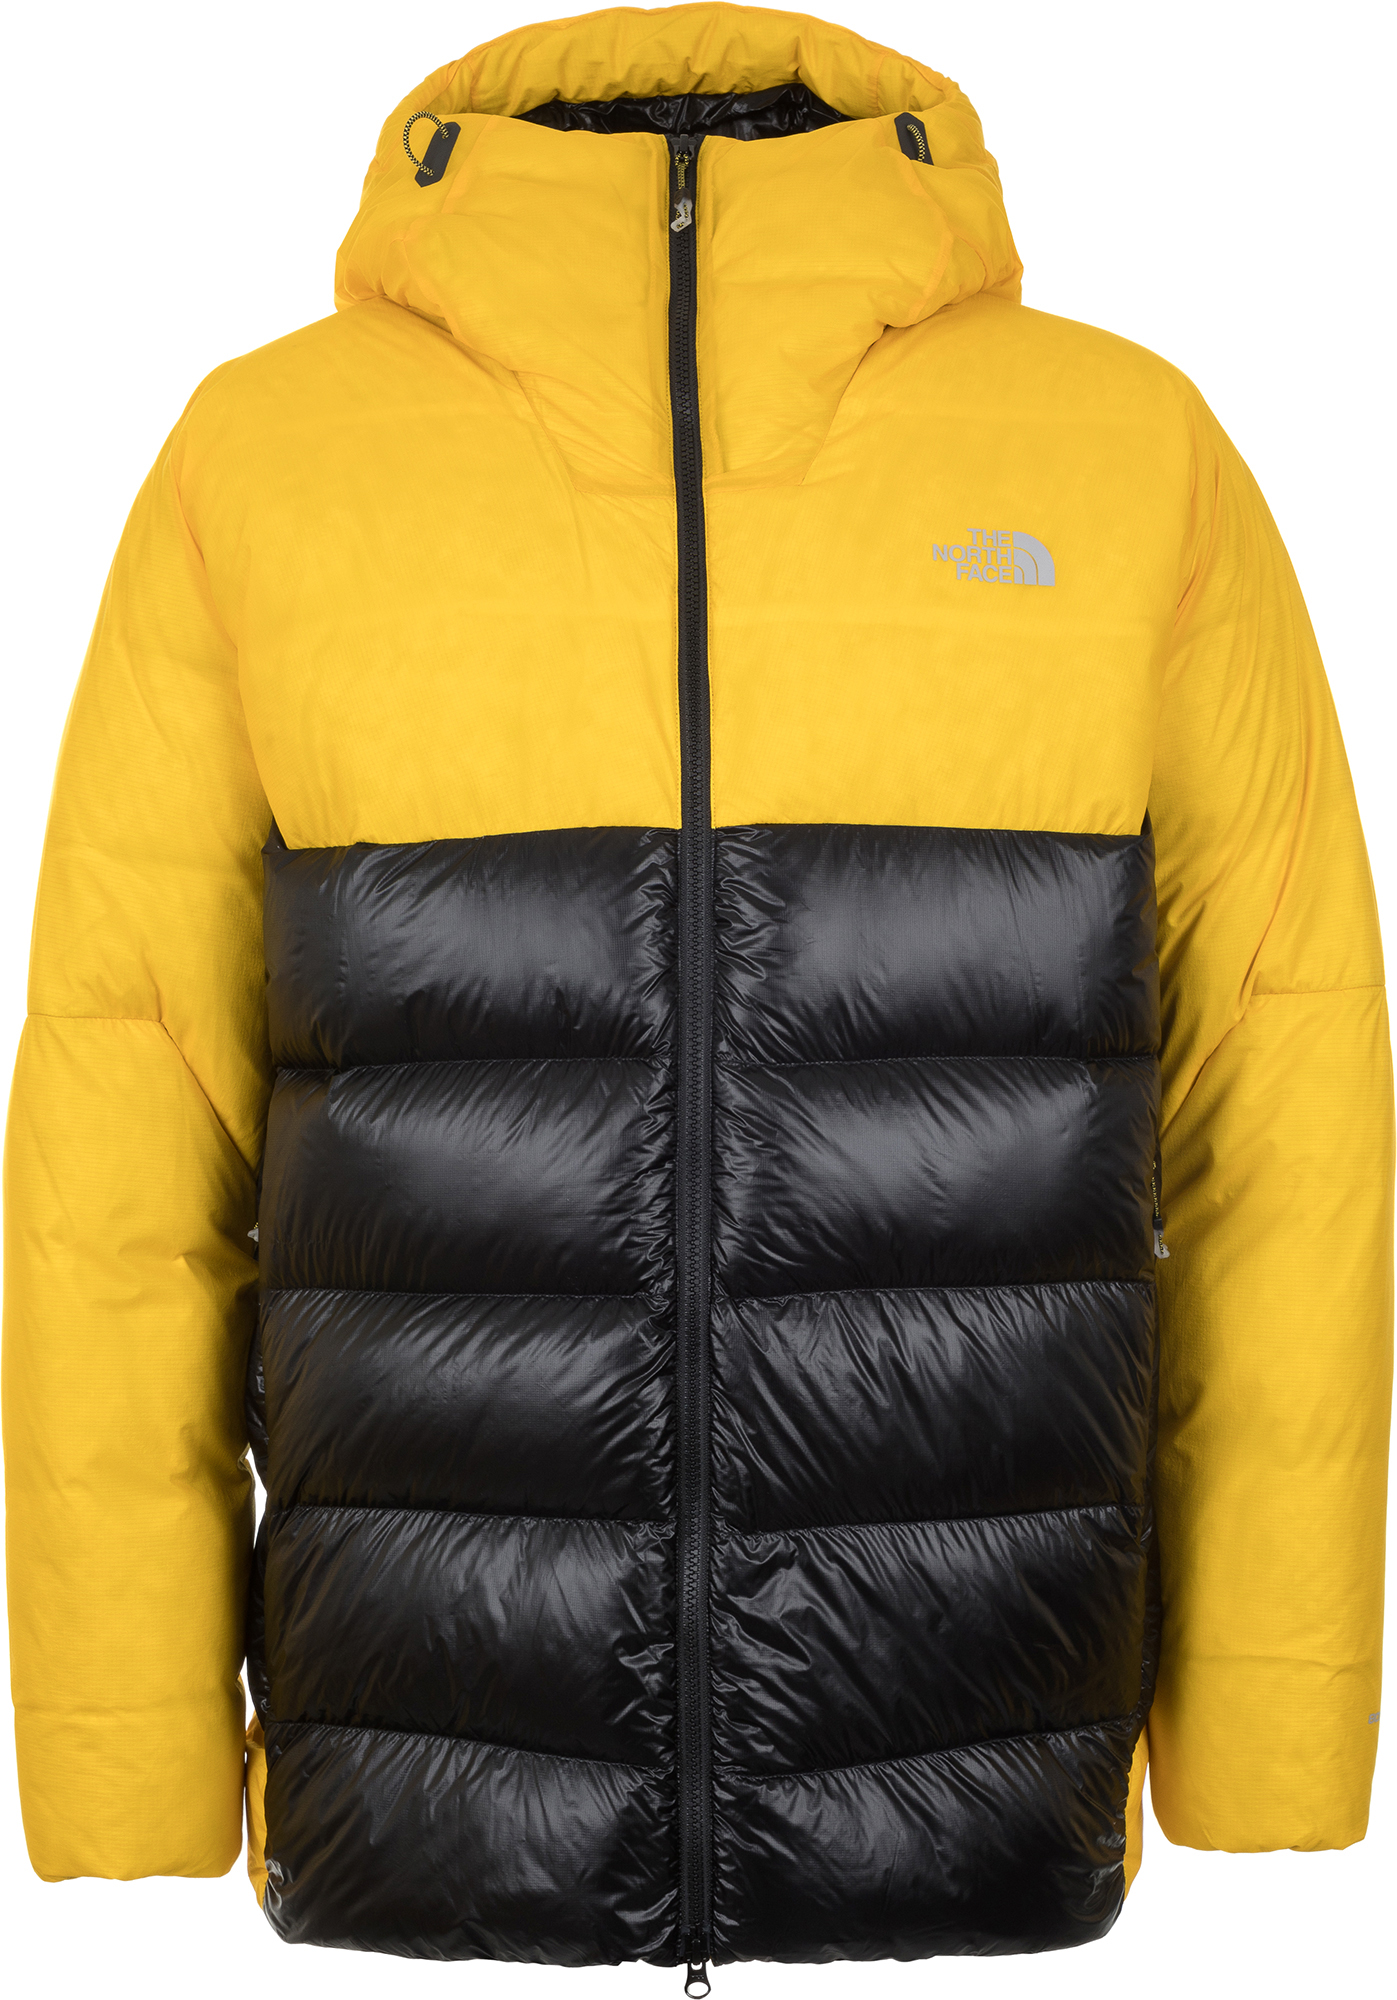 The North Face Куртка пуховая мужская The North Face Summit L6 AW Down Belay, размер 46 куртка the north face the north face summit l2 fuseform fleece 1 2 zip hoodie